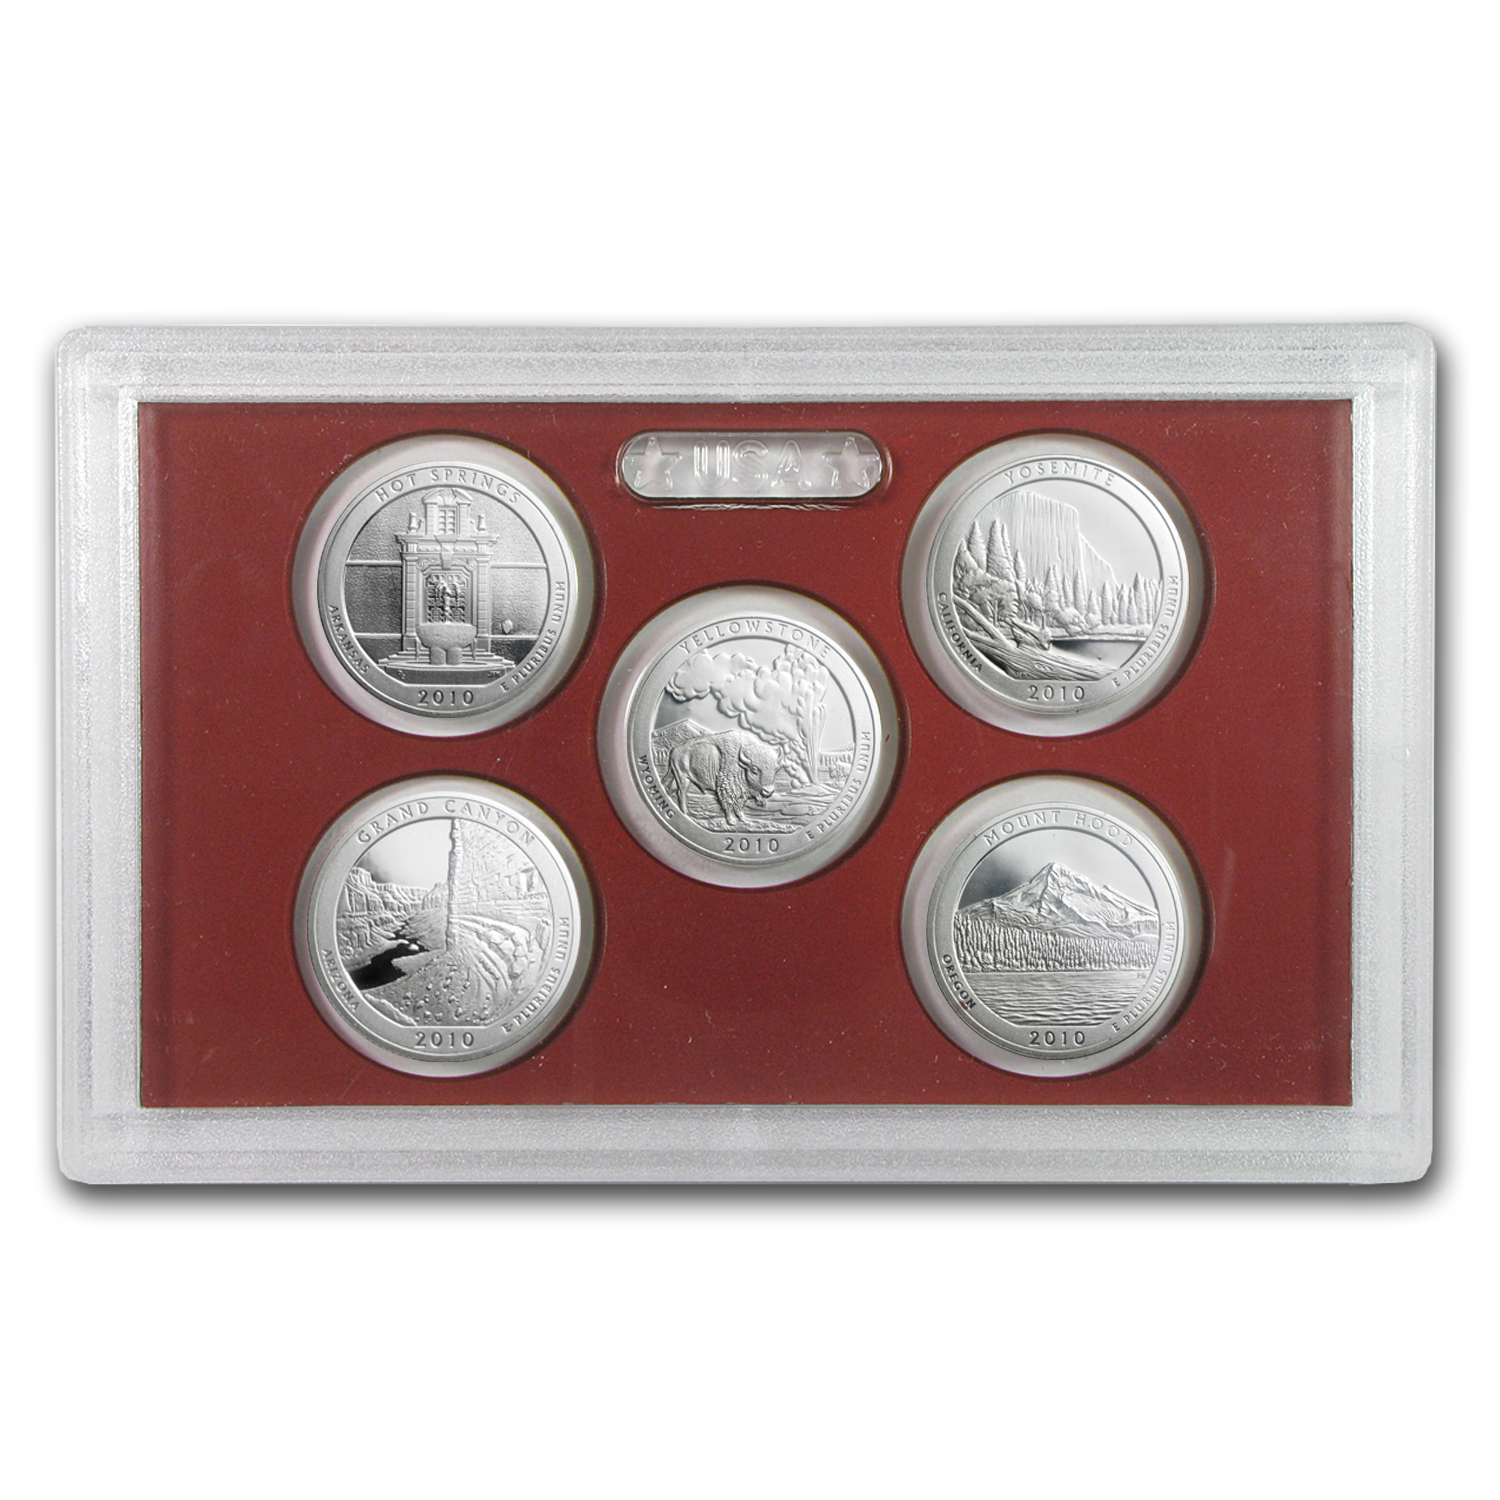 2010 America the Beautiful Quarters Silver Proof Set